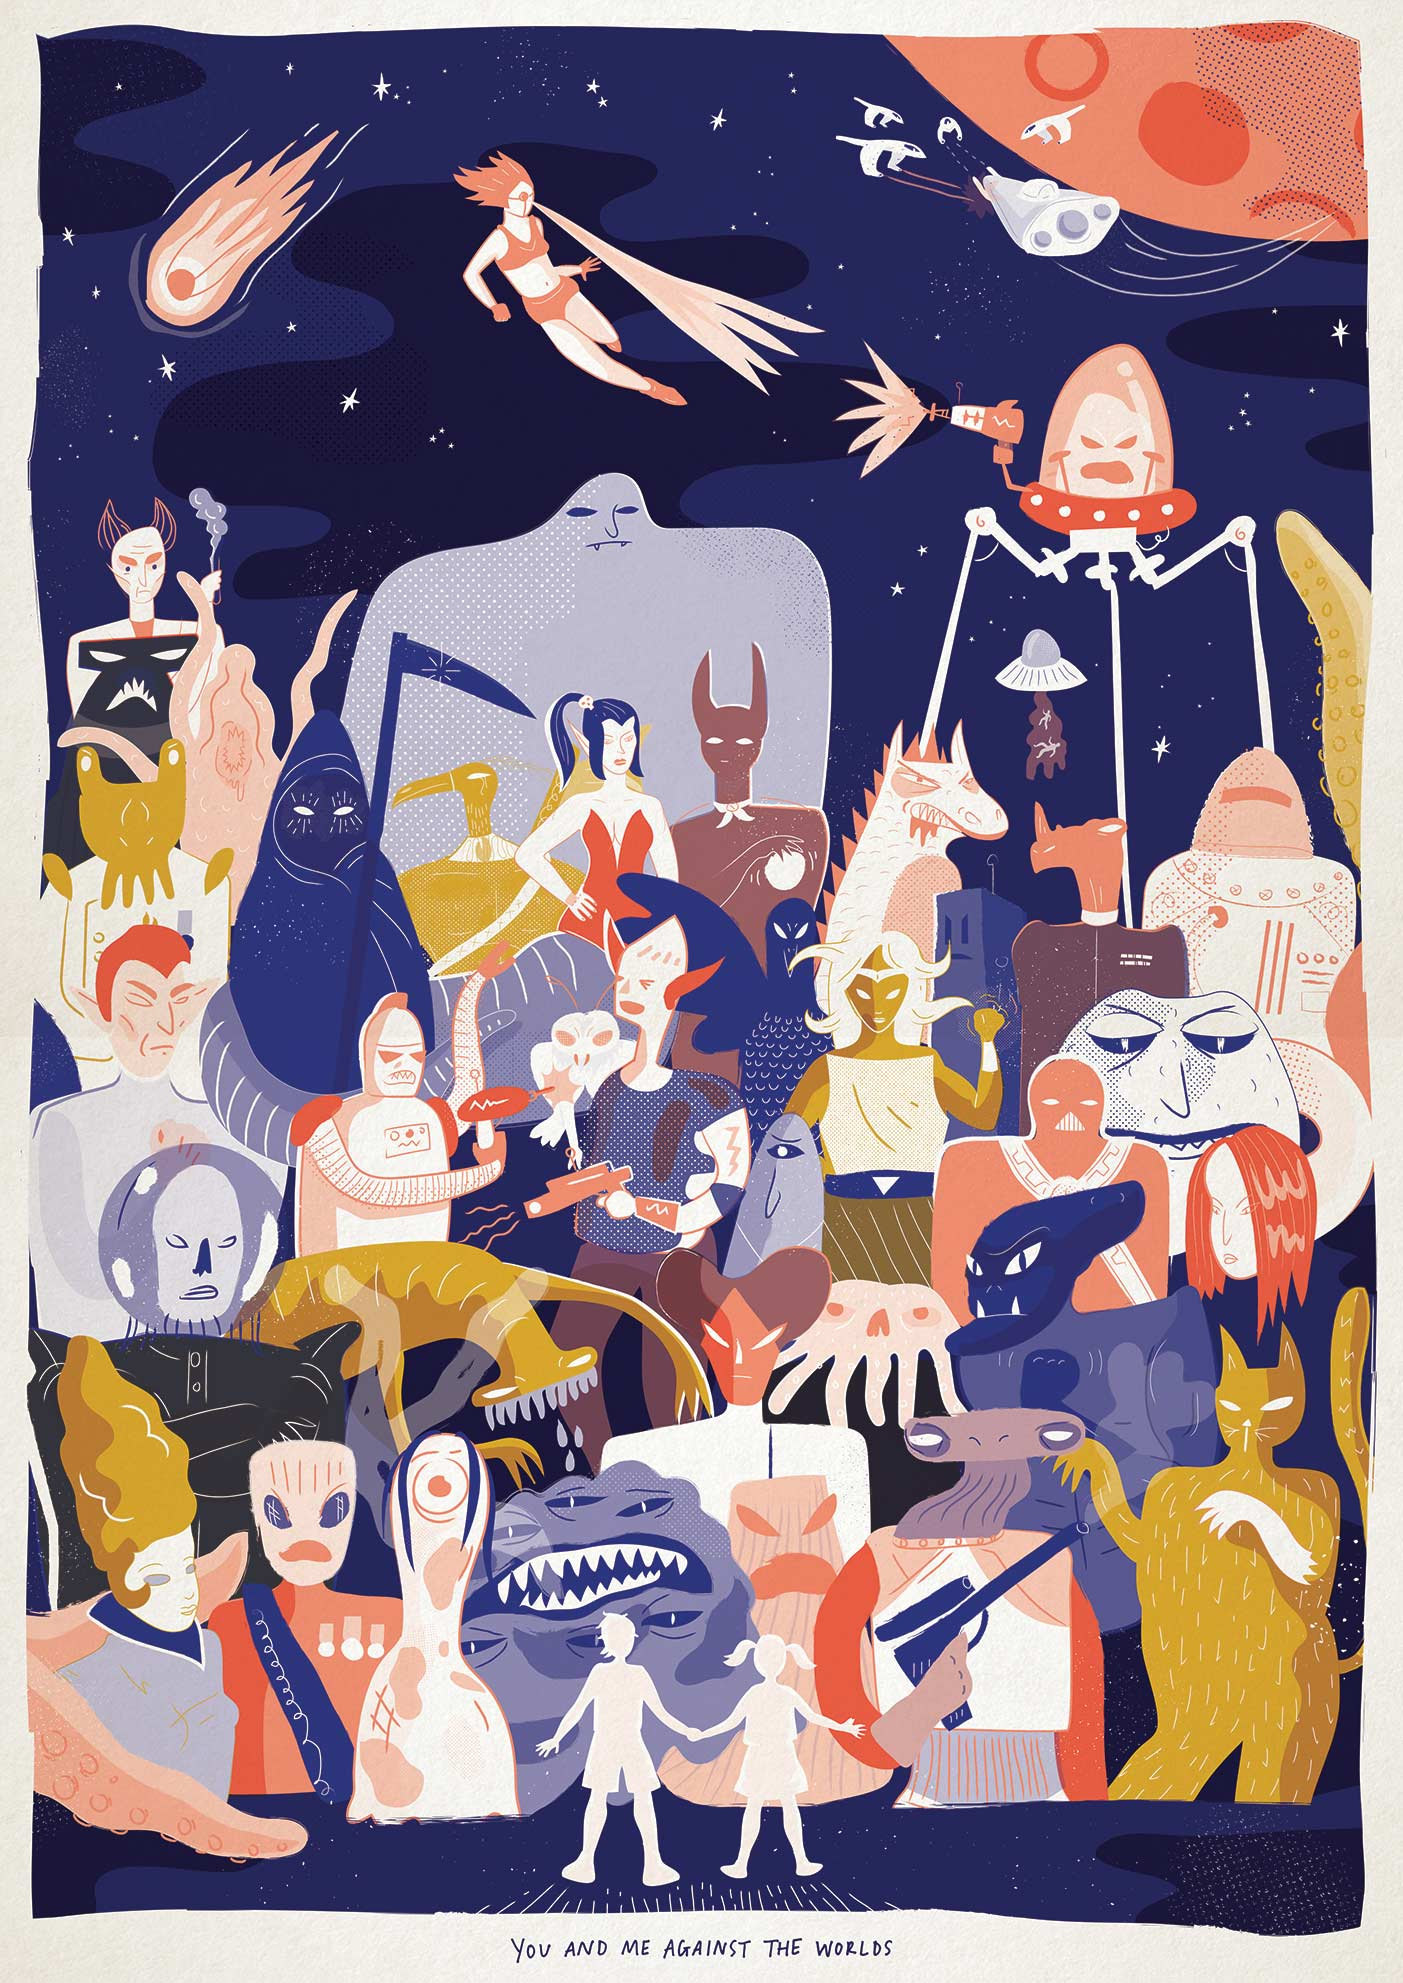 Retro style sci-fi illustration celebrating all the bad guys, monsters and demons thwarted by plucky youngsters. By Elly Jahnz